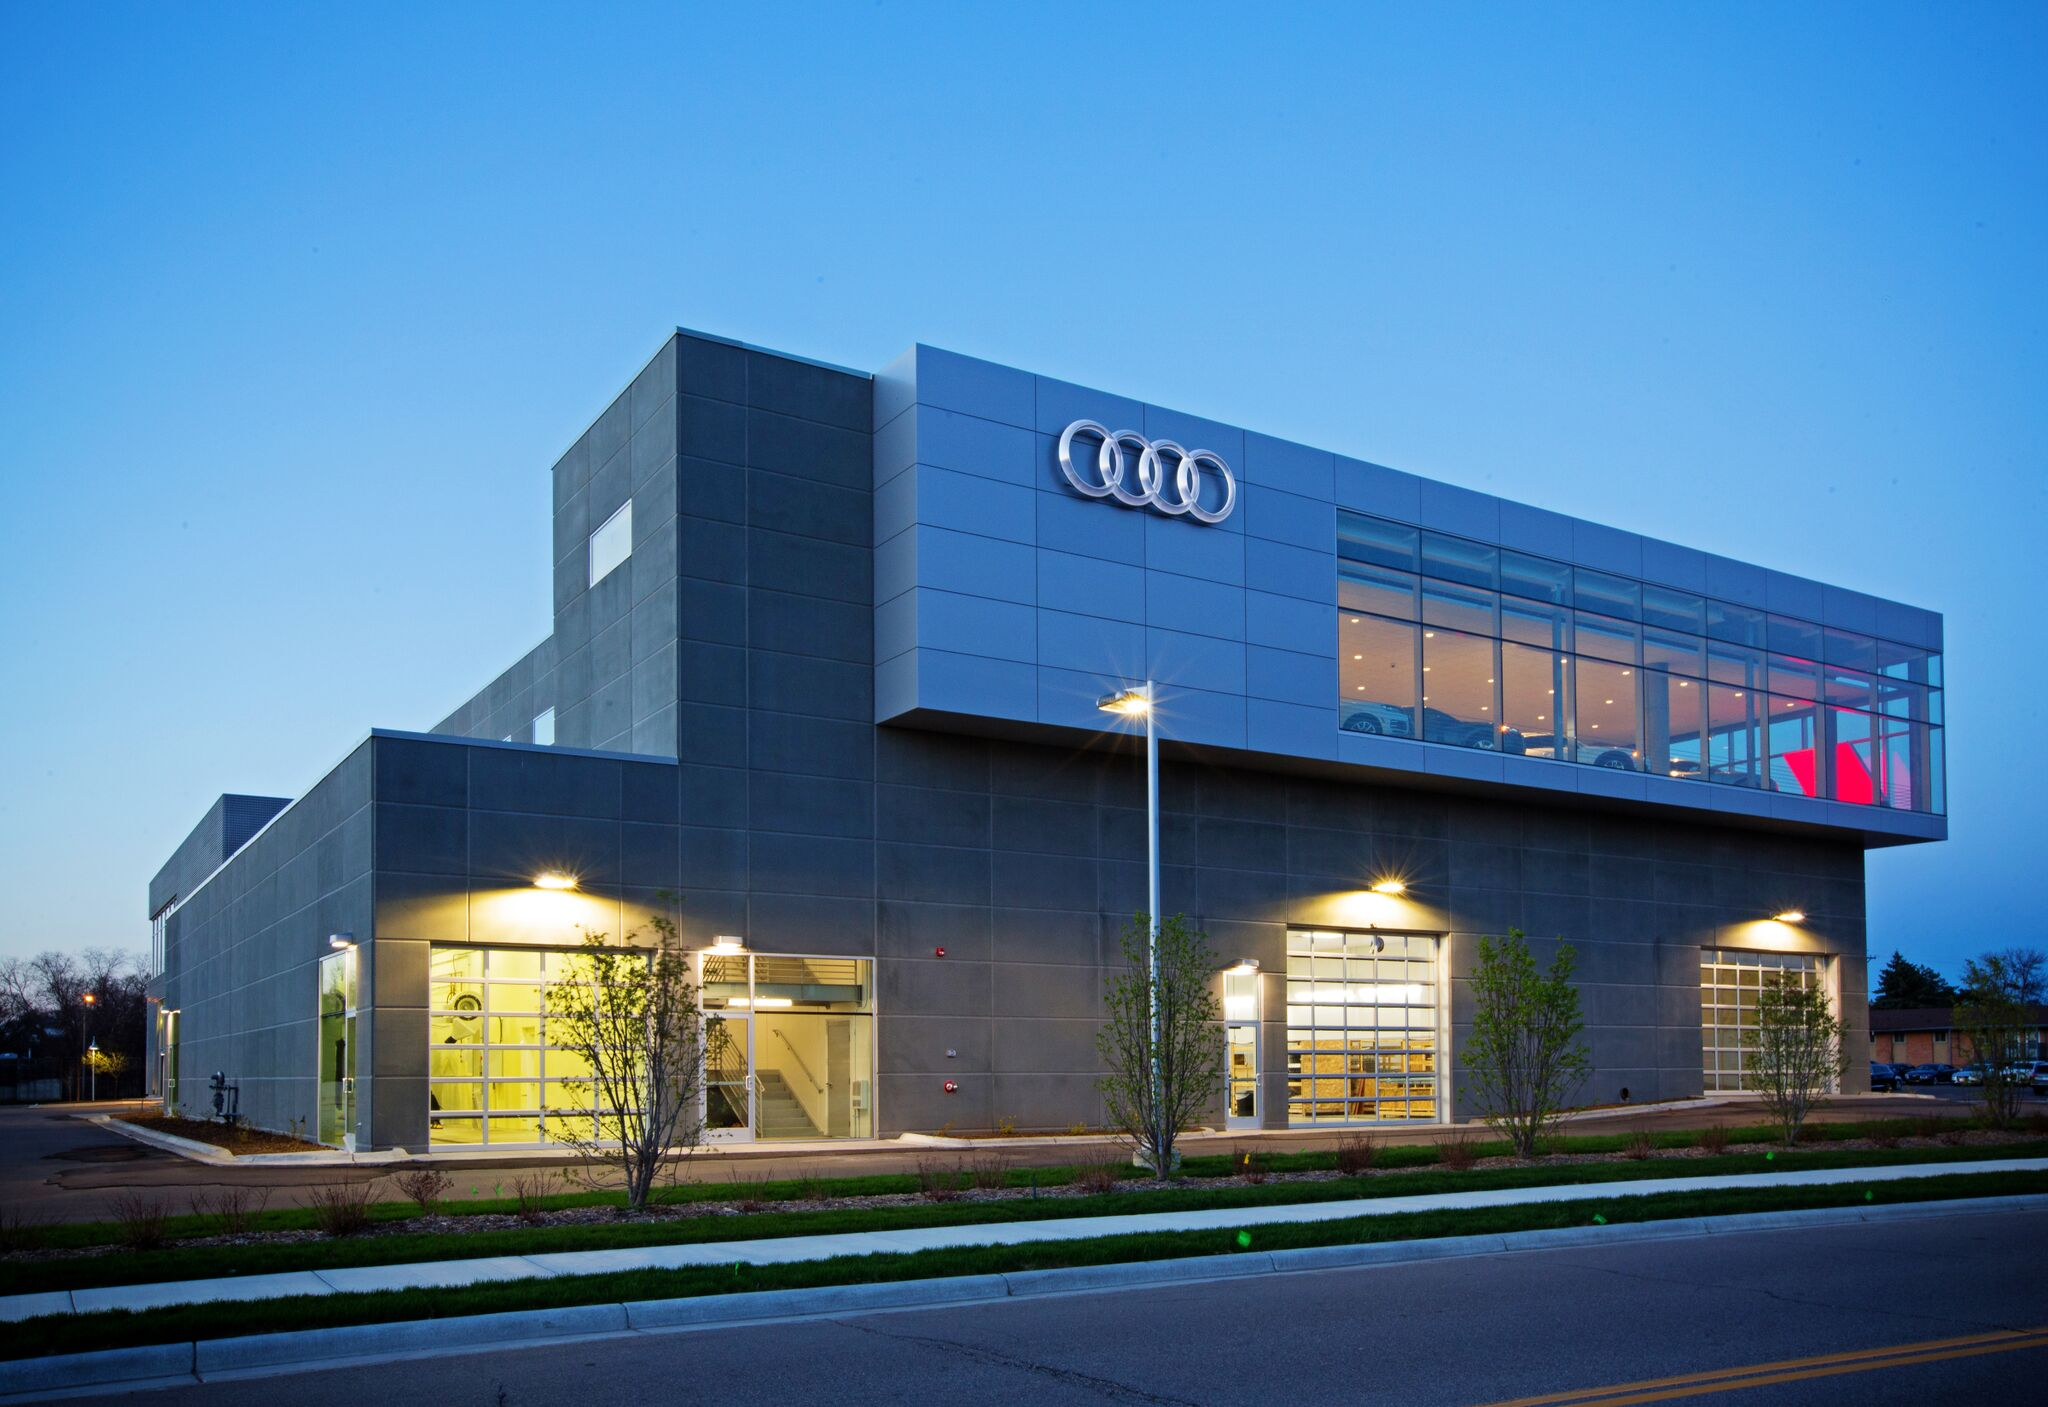 about audi richfield in richfield mn richfield audi. Black Bedroom Furniture Sets. Home Design Ideas